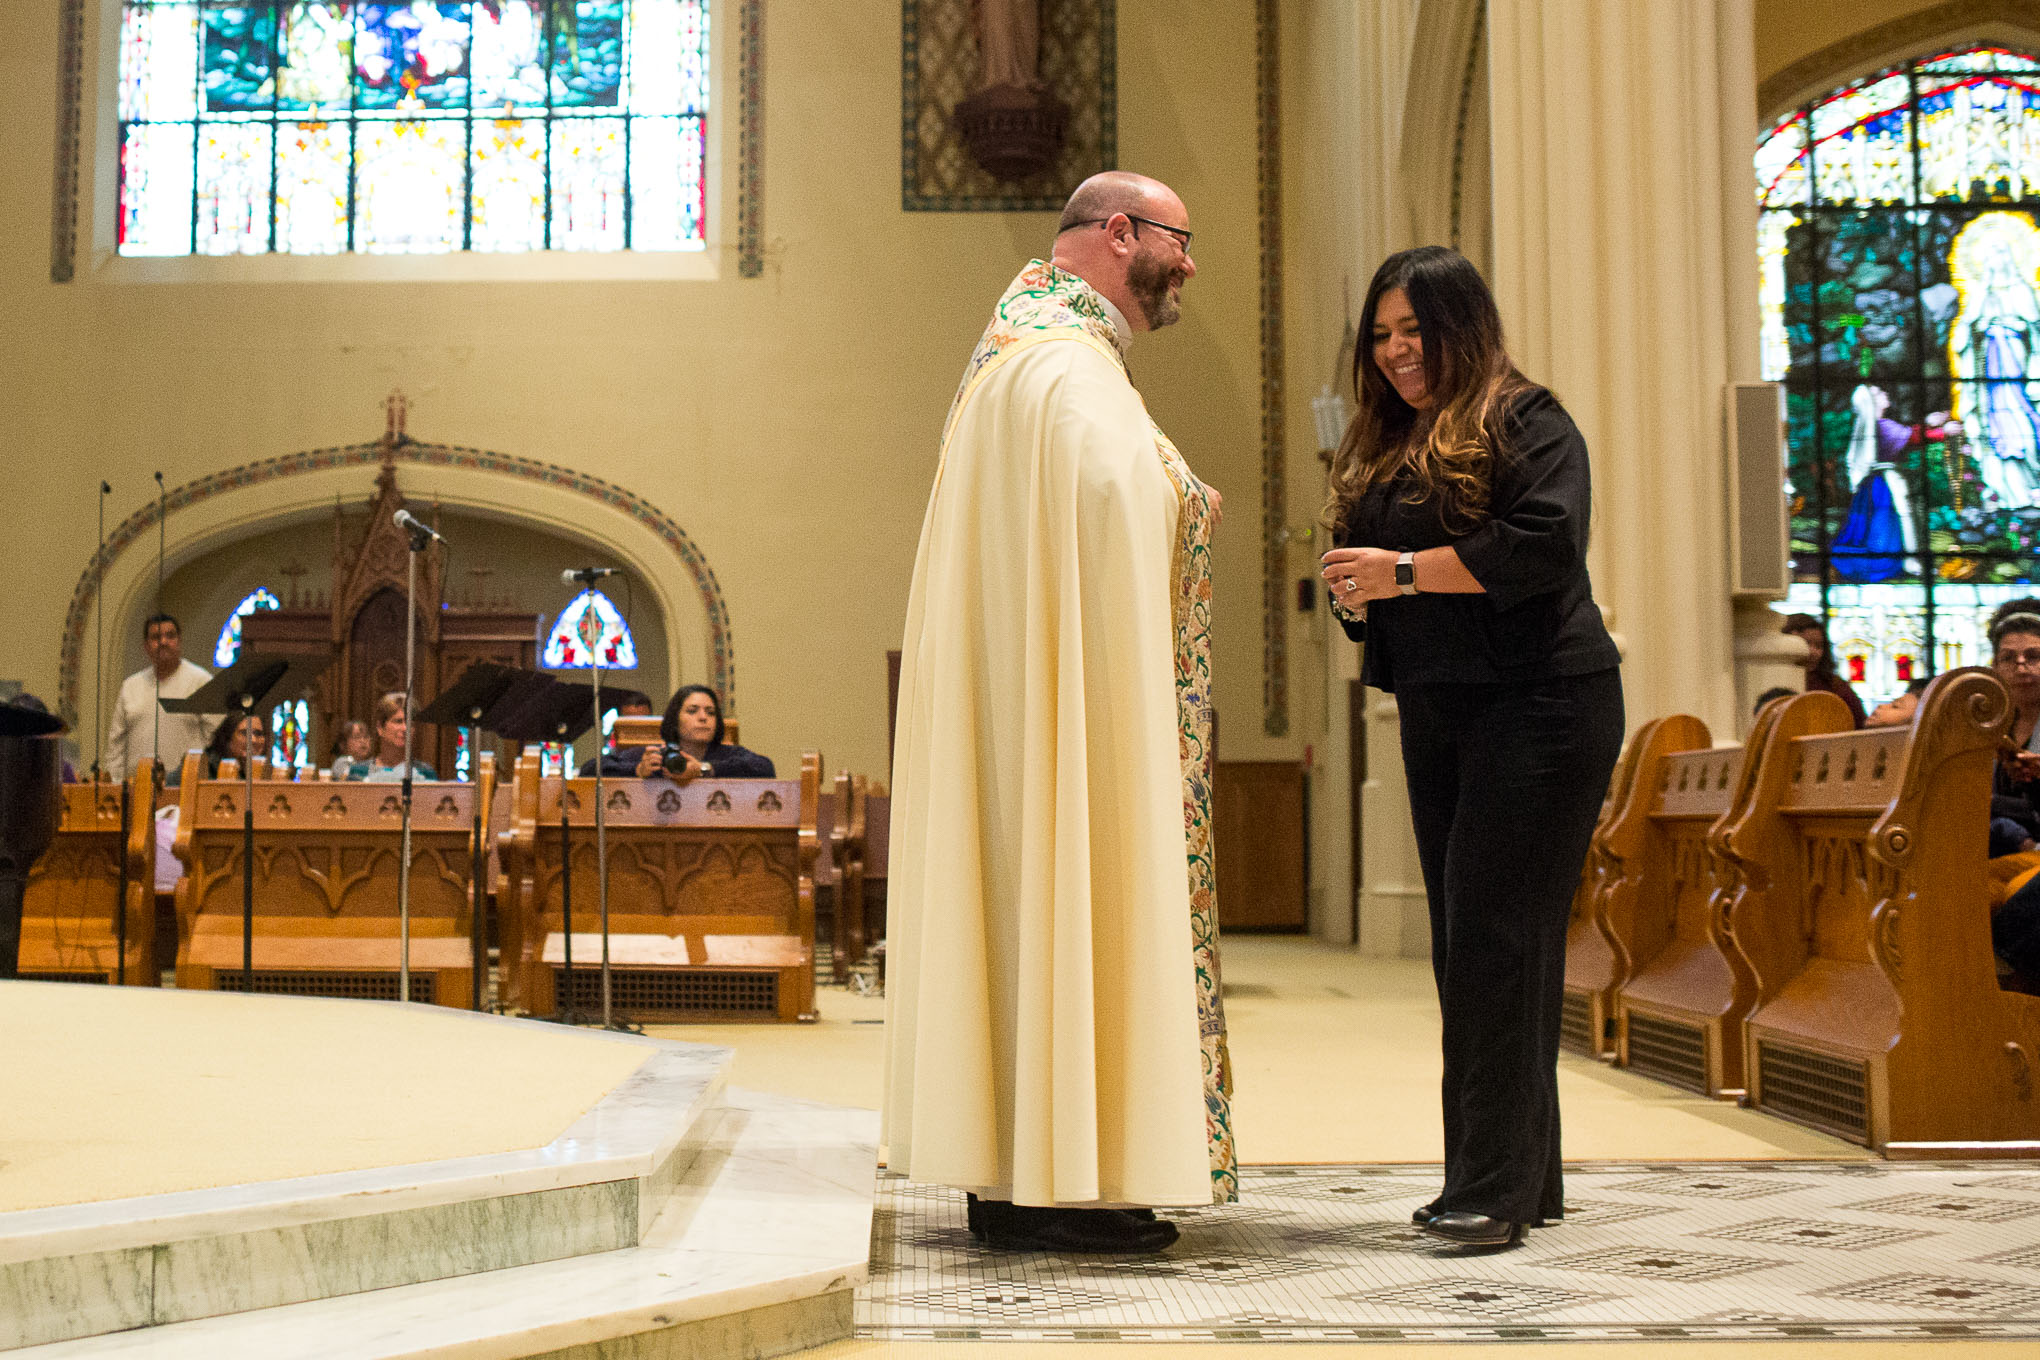 Gina Garcia gets her OLLU pendant blessed at the Sacred Heart Conventual Chapel.